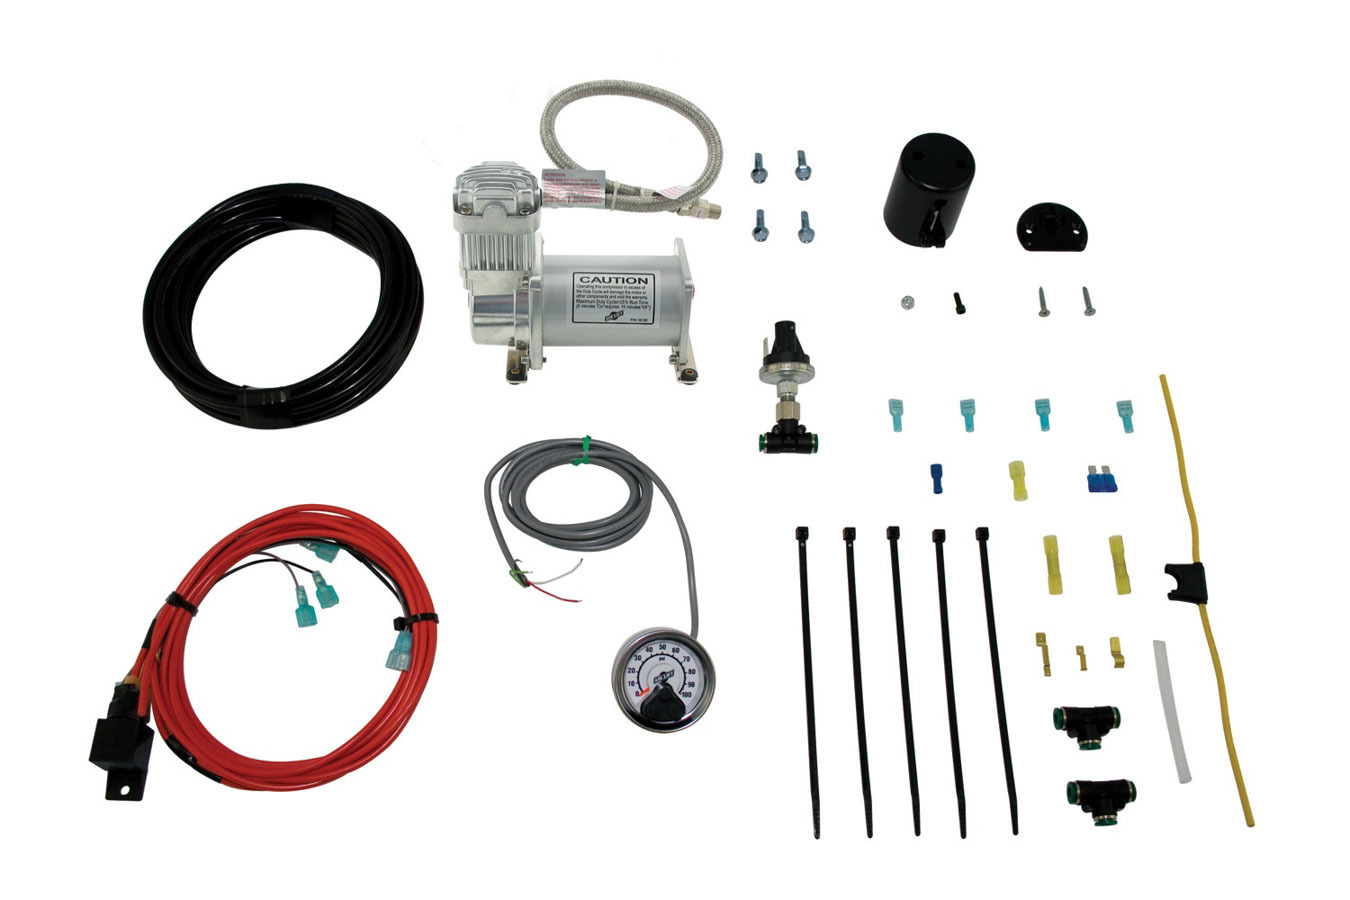 Air Lift 25854 Air Compressor, Load Controller Single, Suspension, 120 psi Max, 12V, Single Gauge, Controls / Pressure Sensor, Airlift Air Spring Kits, Kit